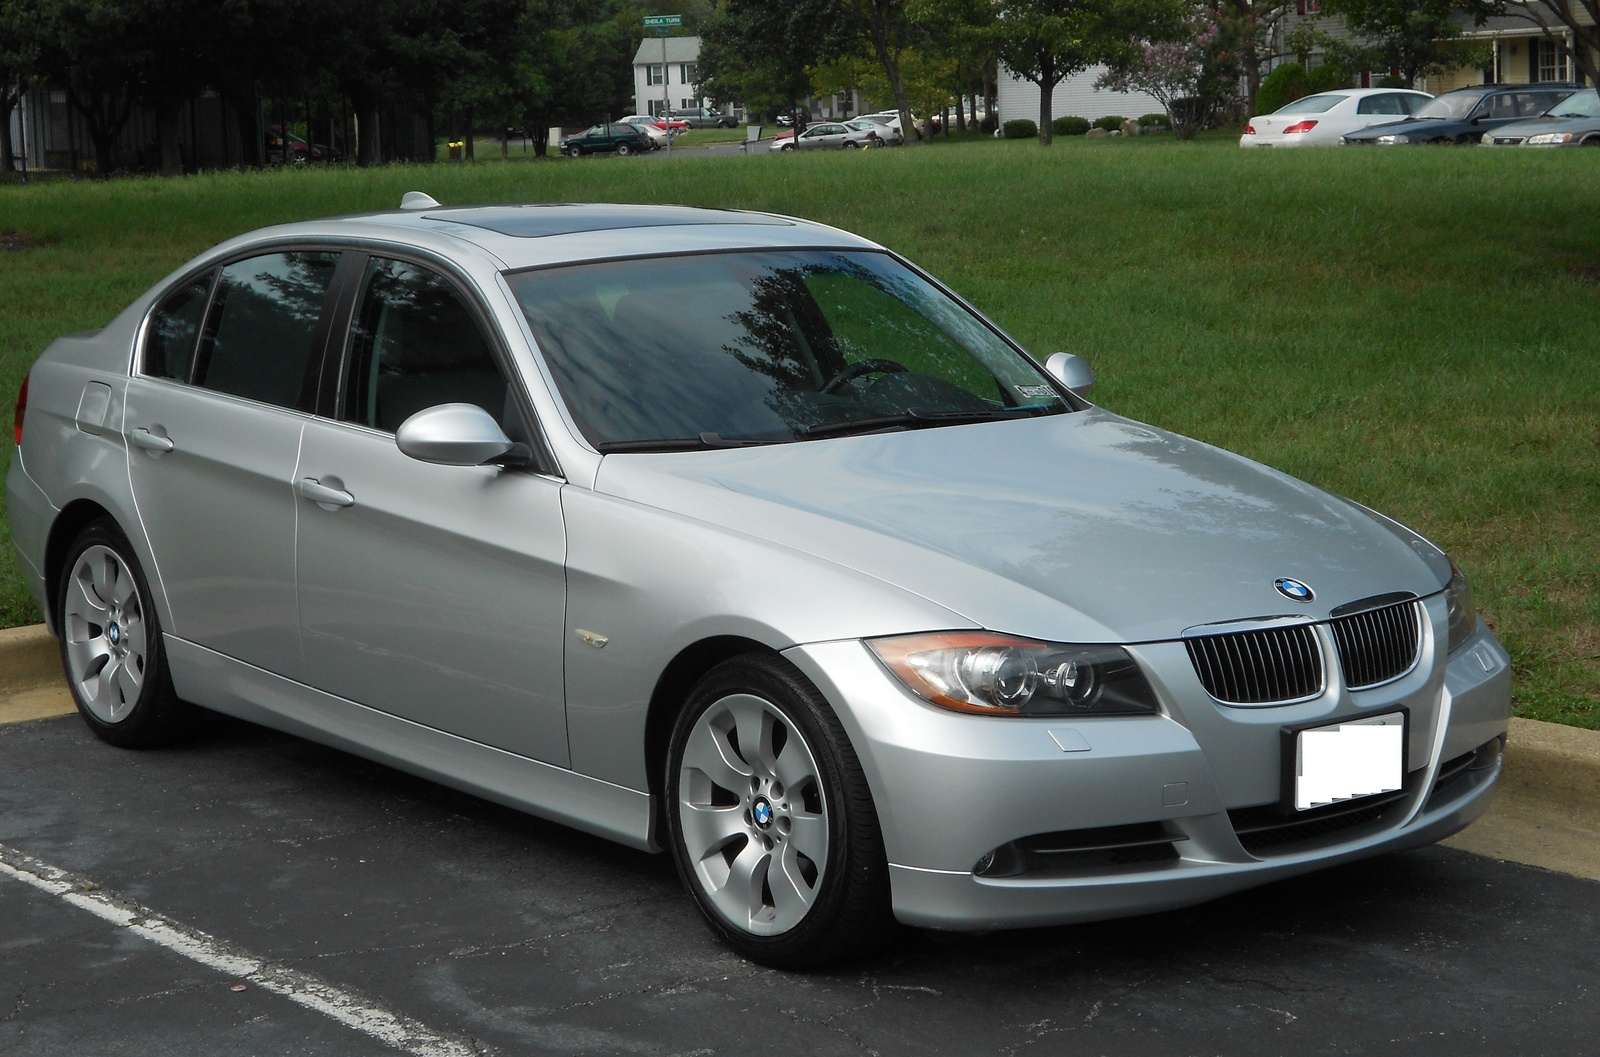 2006 bmw 3 series exterior pictures cargurus. Black Bedroom Furniture Sets. Home Design Ideas